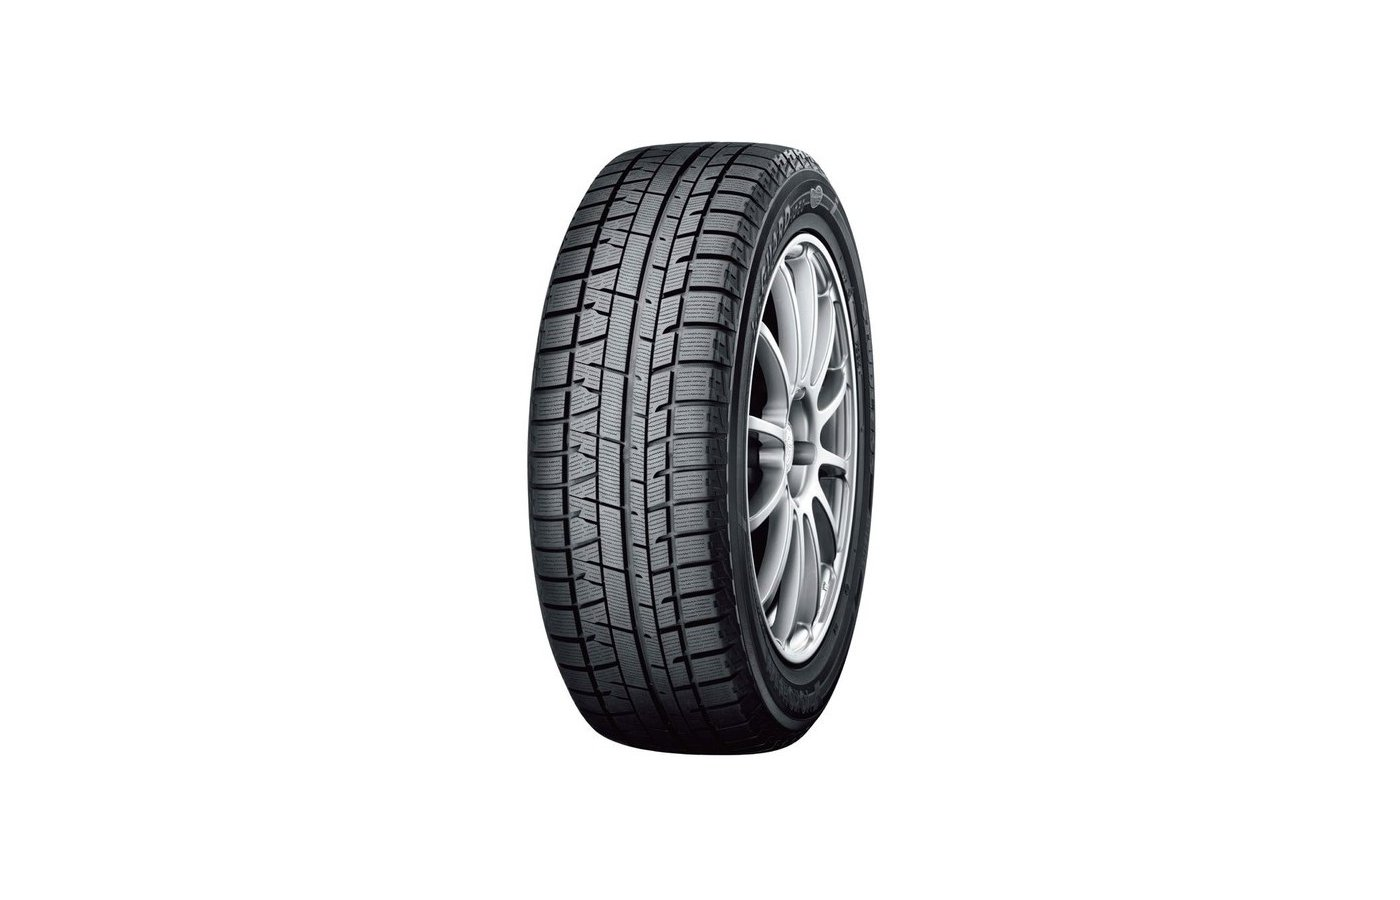 Шина Yokohama Ice Guard IG50 Plus 225/40 R18 TL 92Q